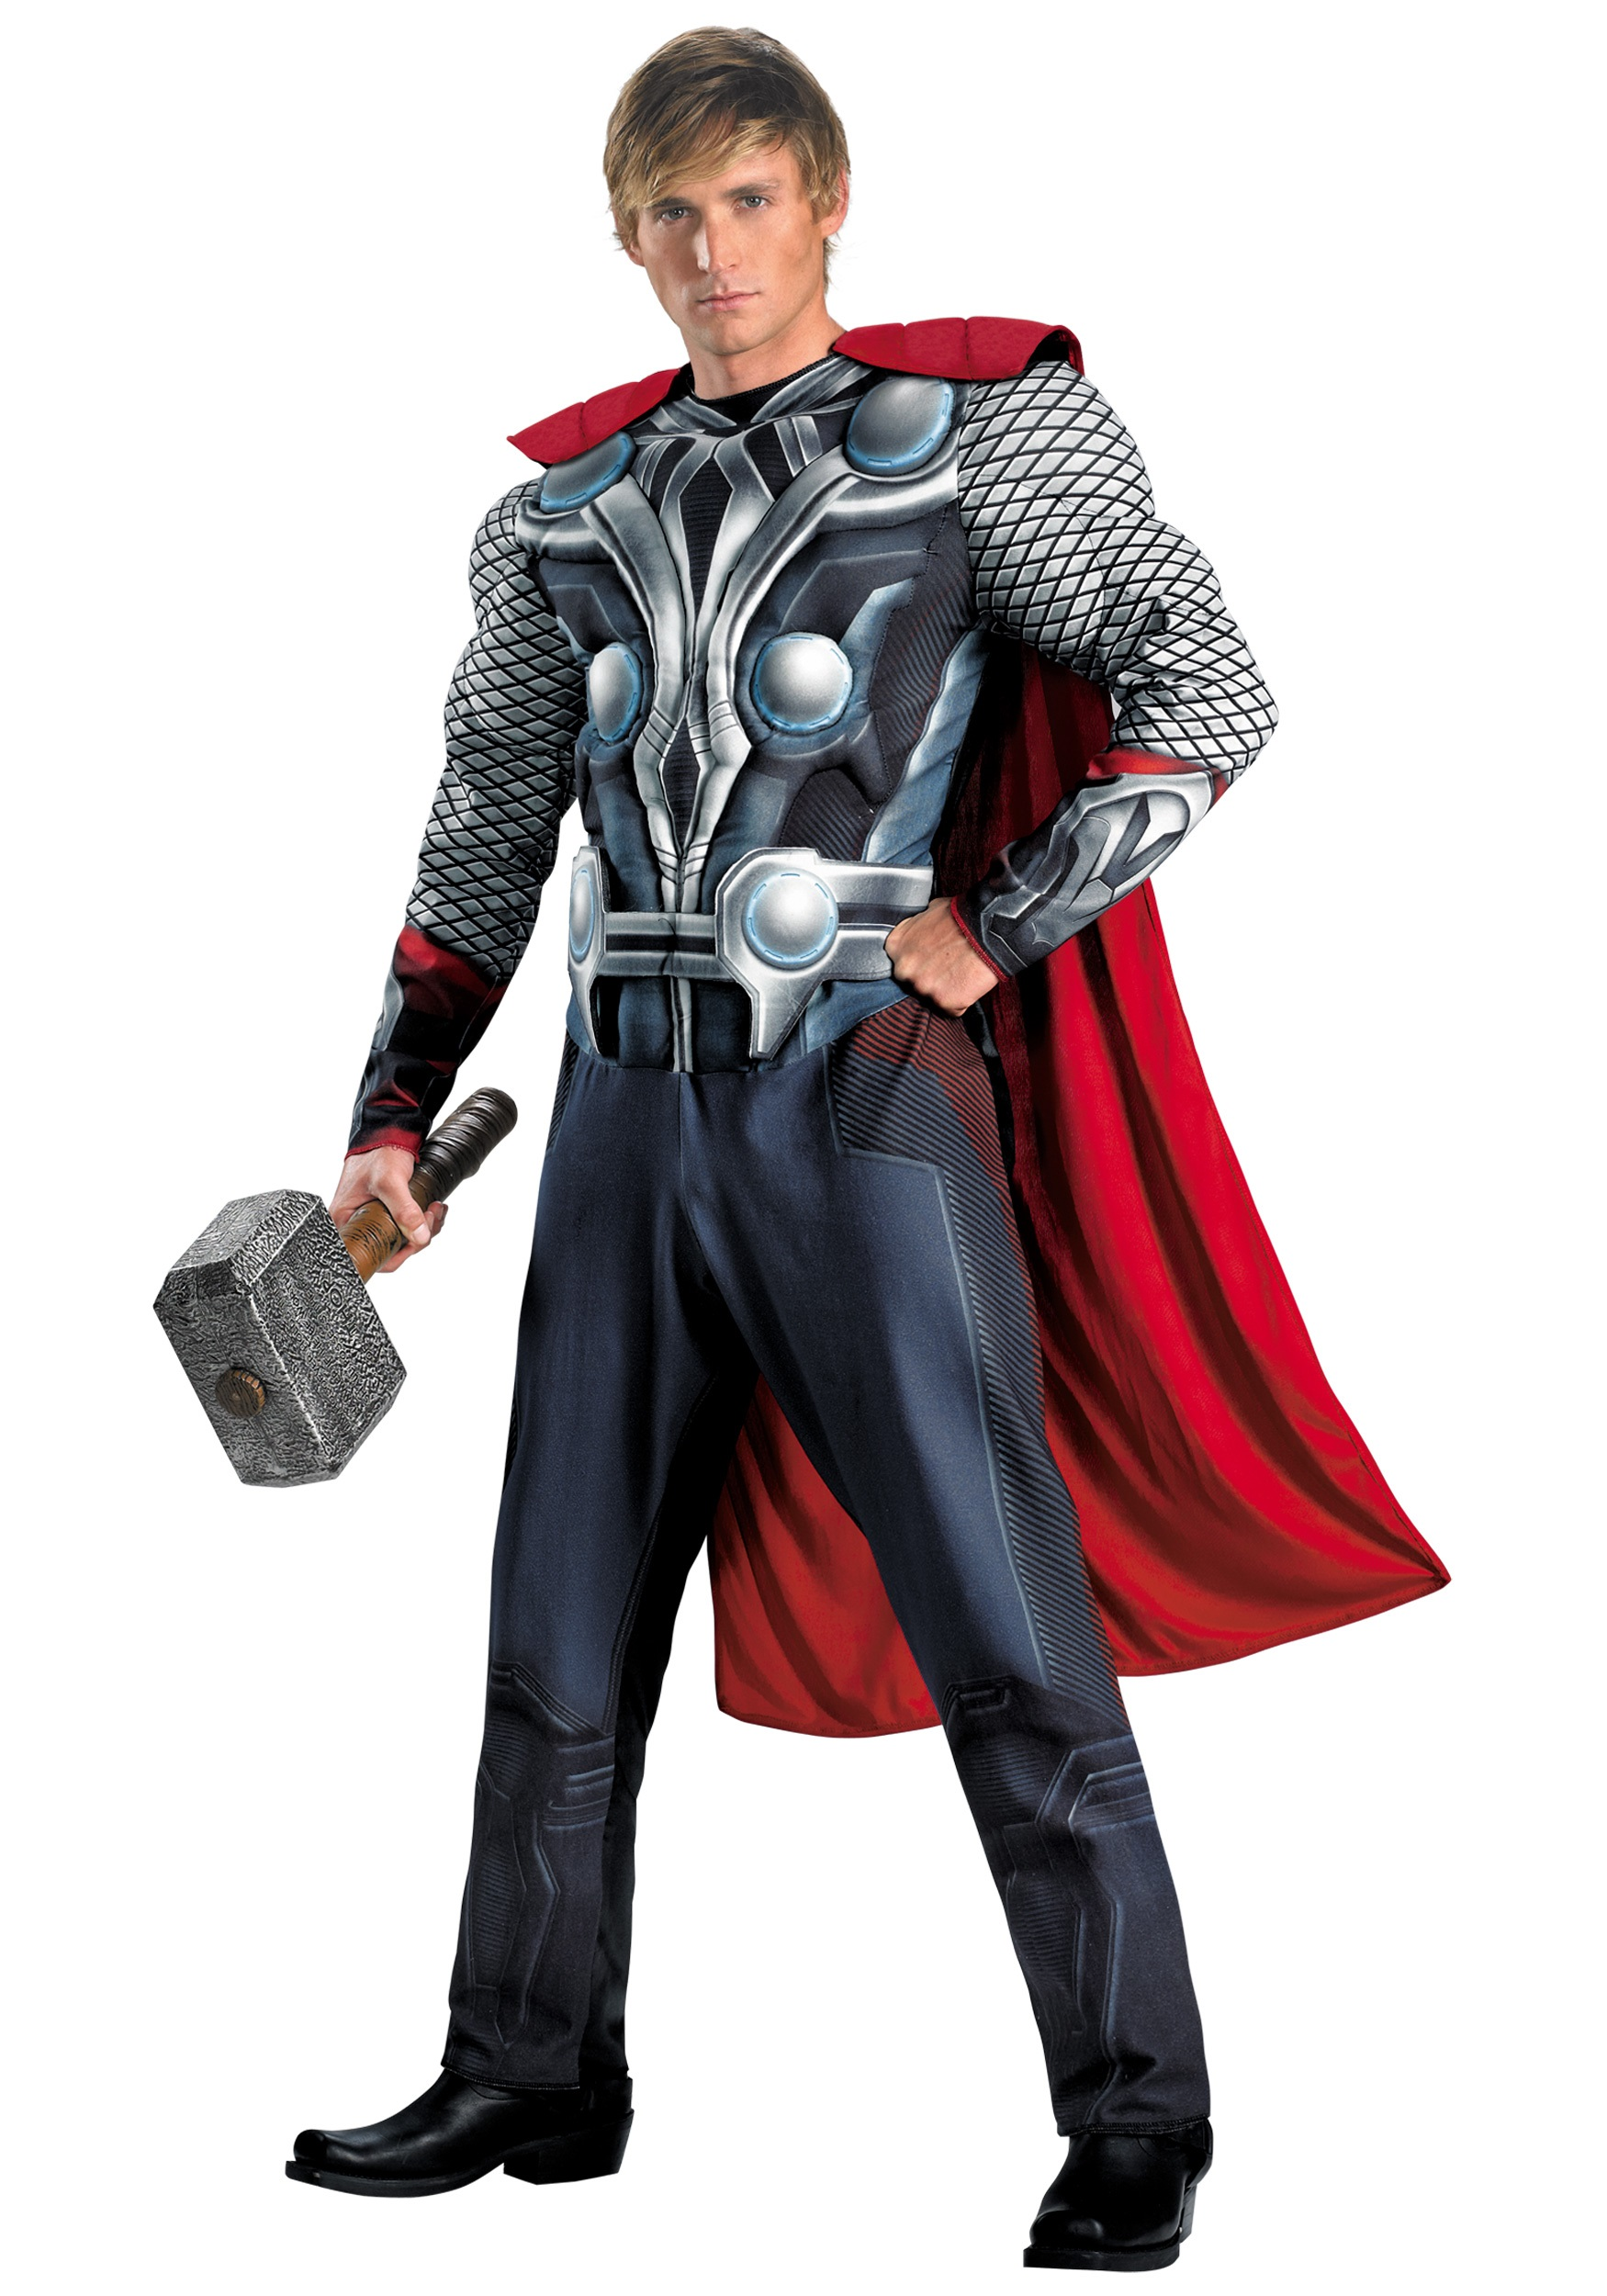 Adult Avengers Thor Muscle Costume  sc 1 st  Halloween Costumes & Adult Avengers Thor Muscle Costume - Halloween Costumes